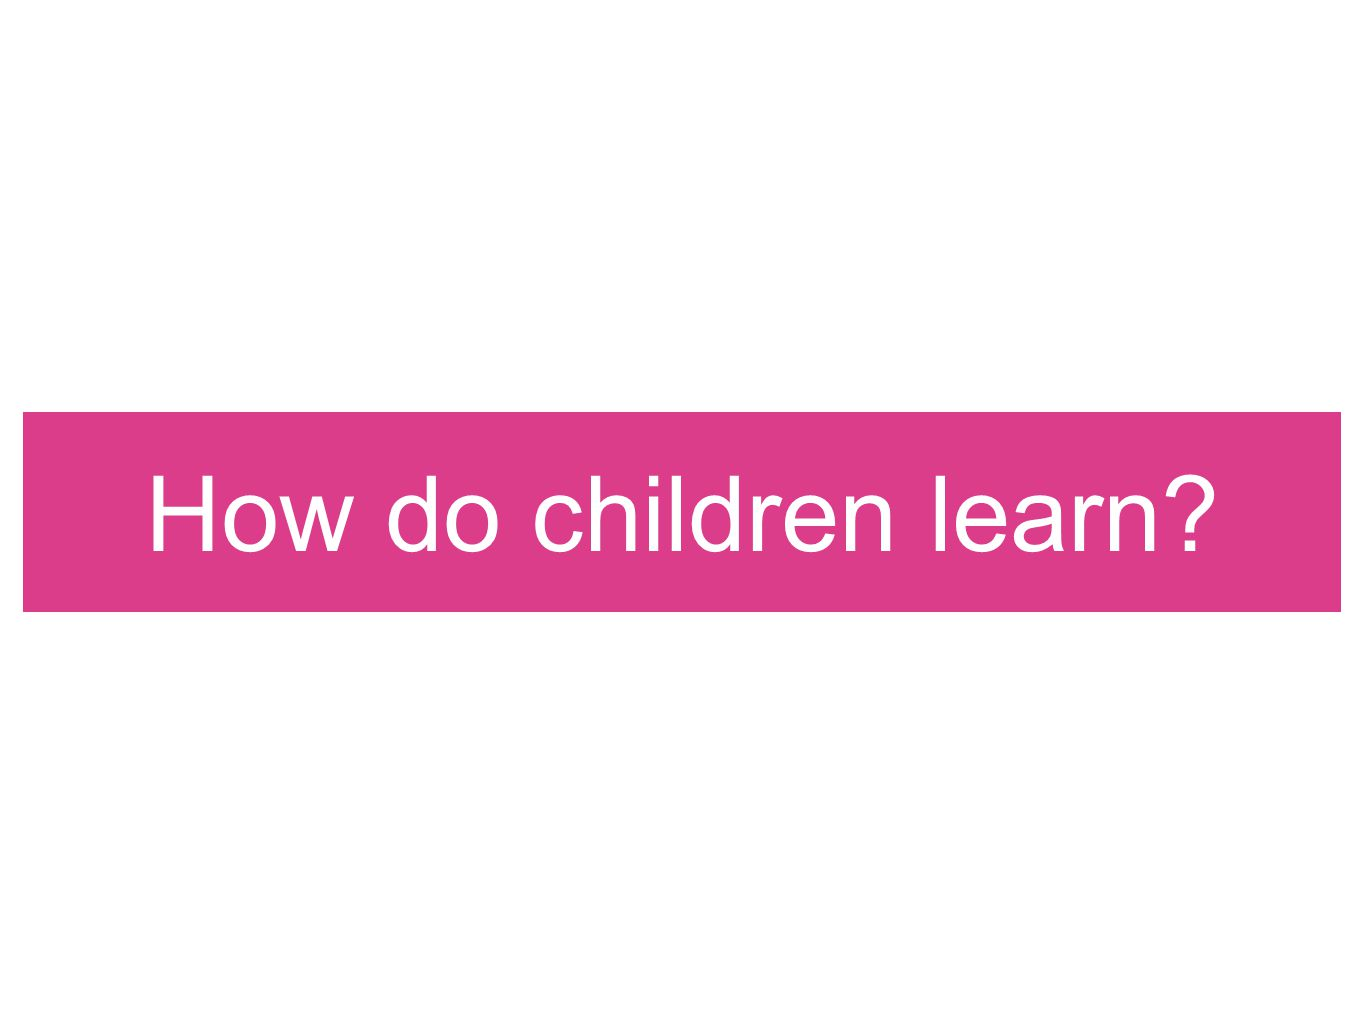 How do children learn